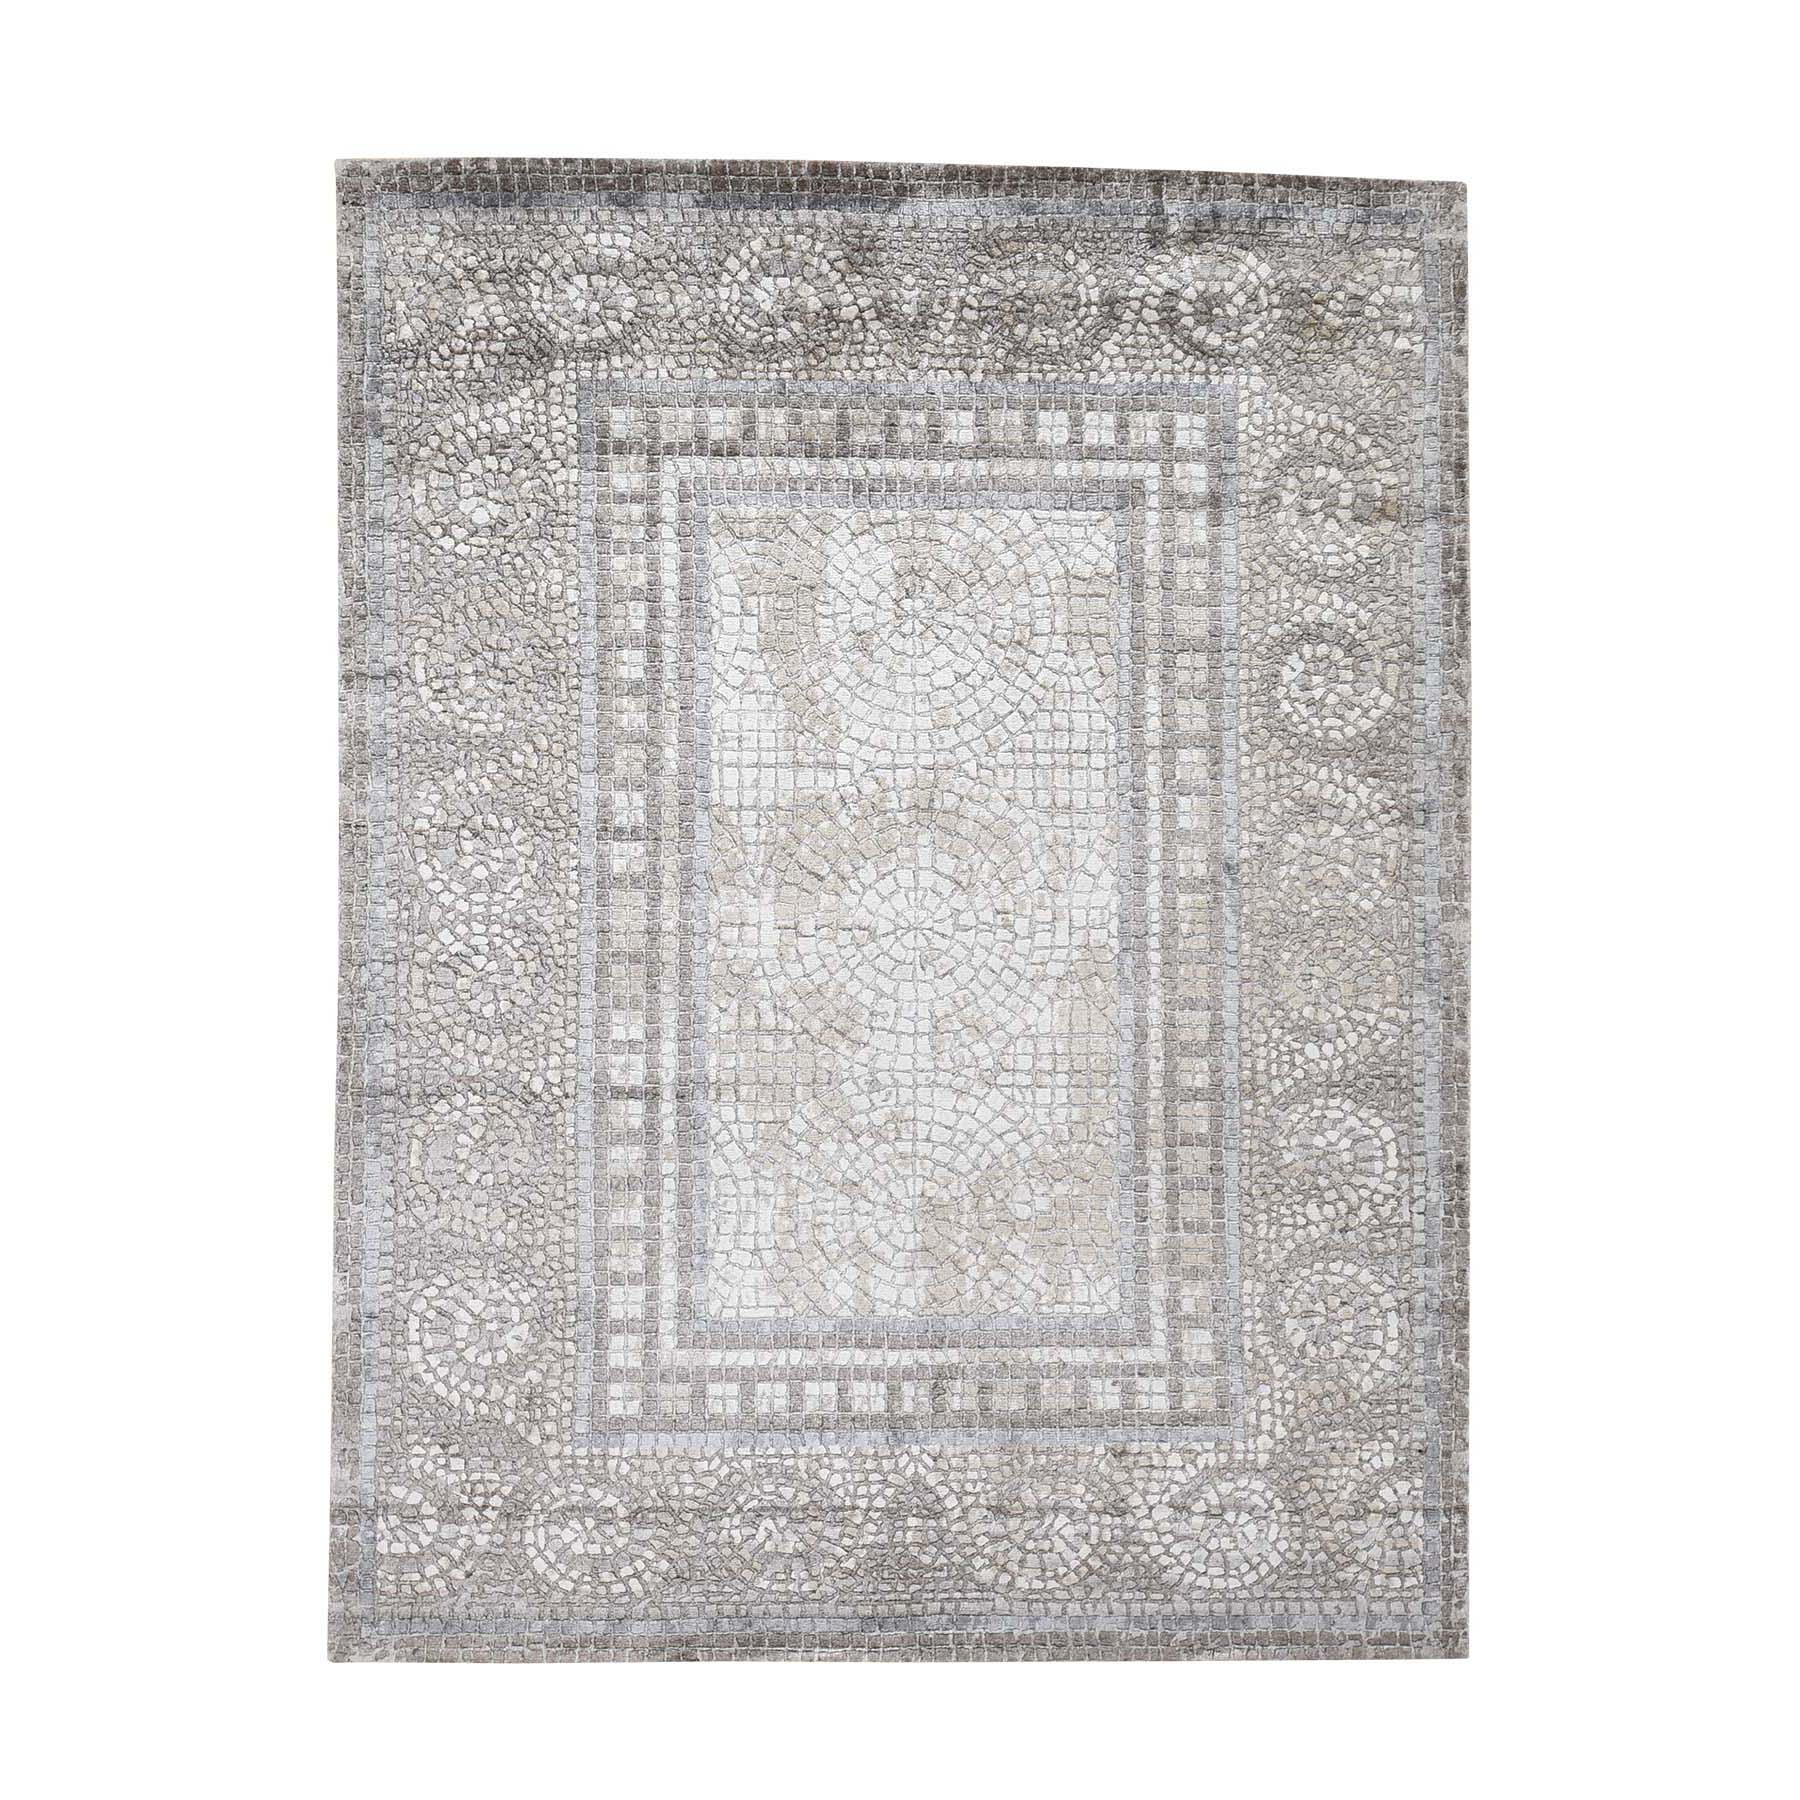 "5'2""x6'10"" Ivory And Taupe Silken Roman Mosaic Design Hand-Knotted Oriental Rug"